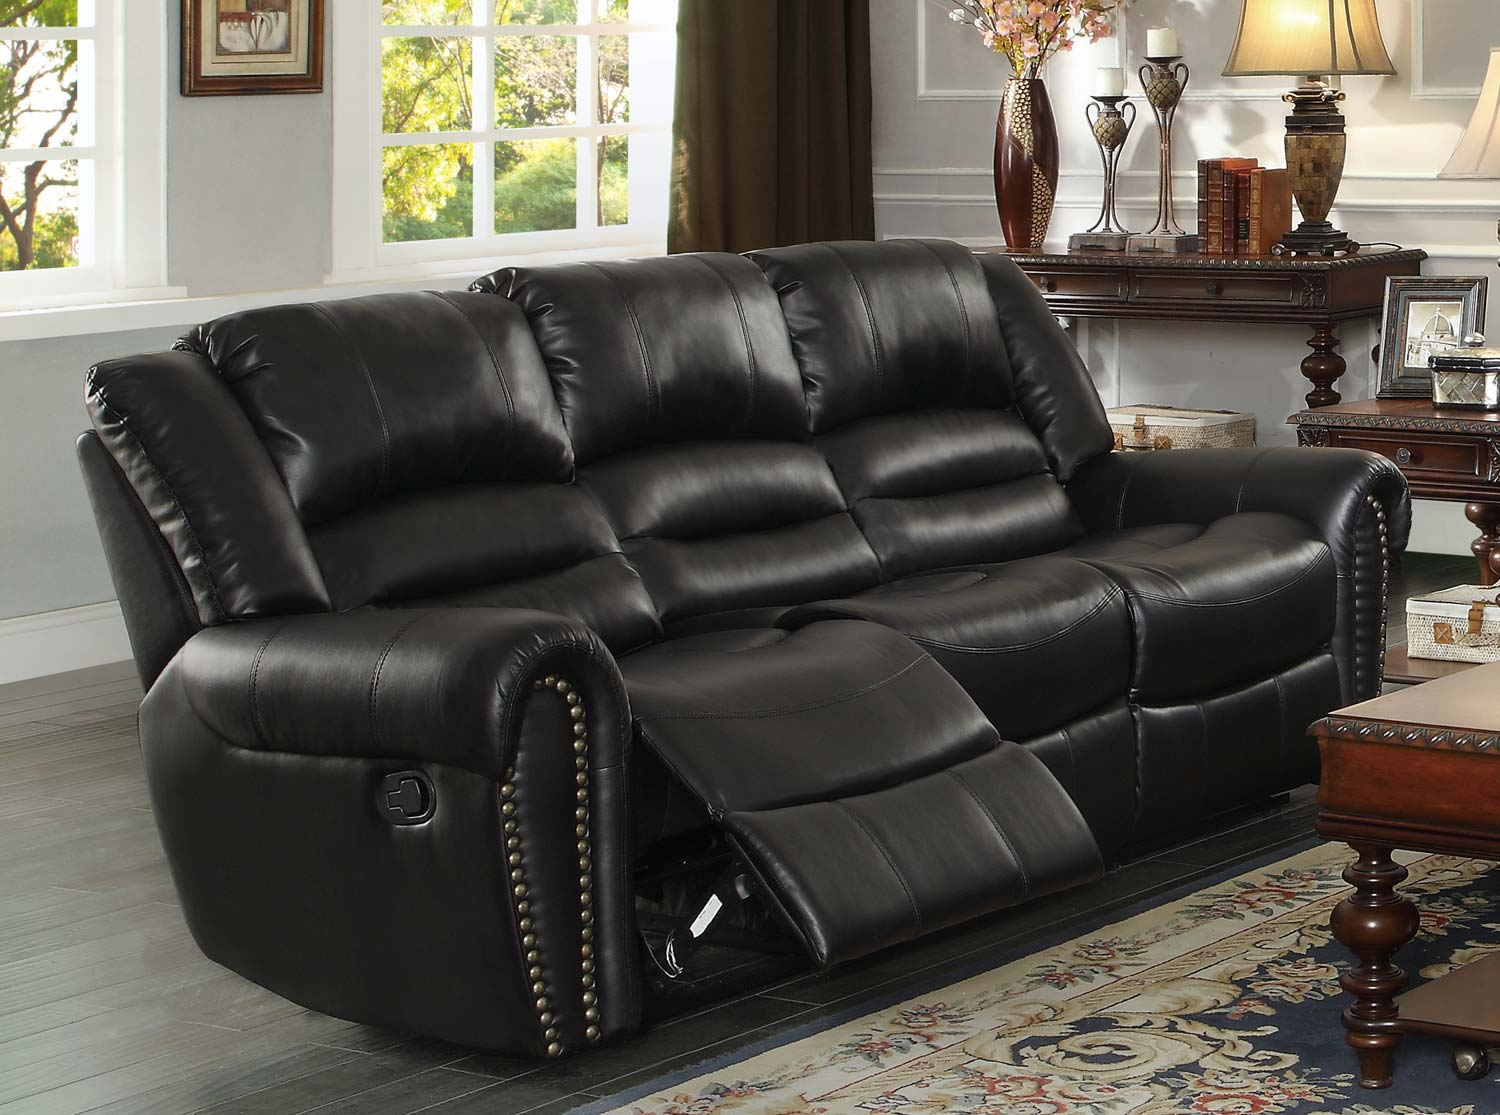 Homelegance Center Hill Double Reclining Sofa Black Bonded Leather Match